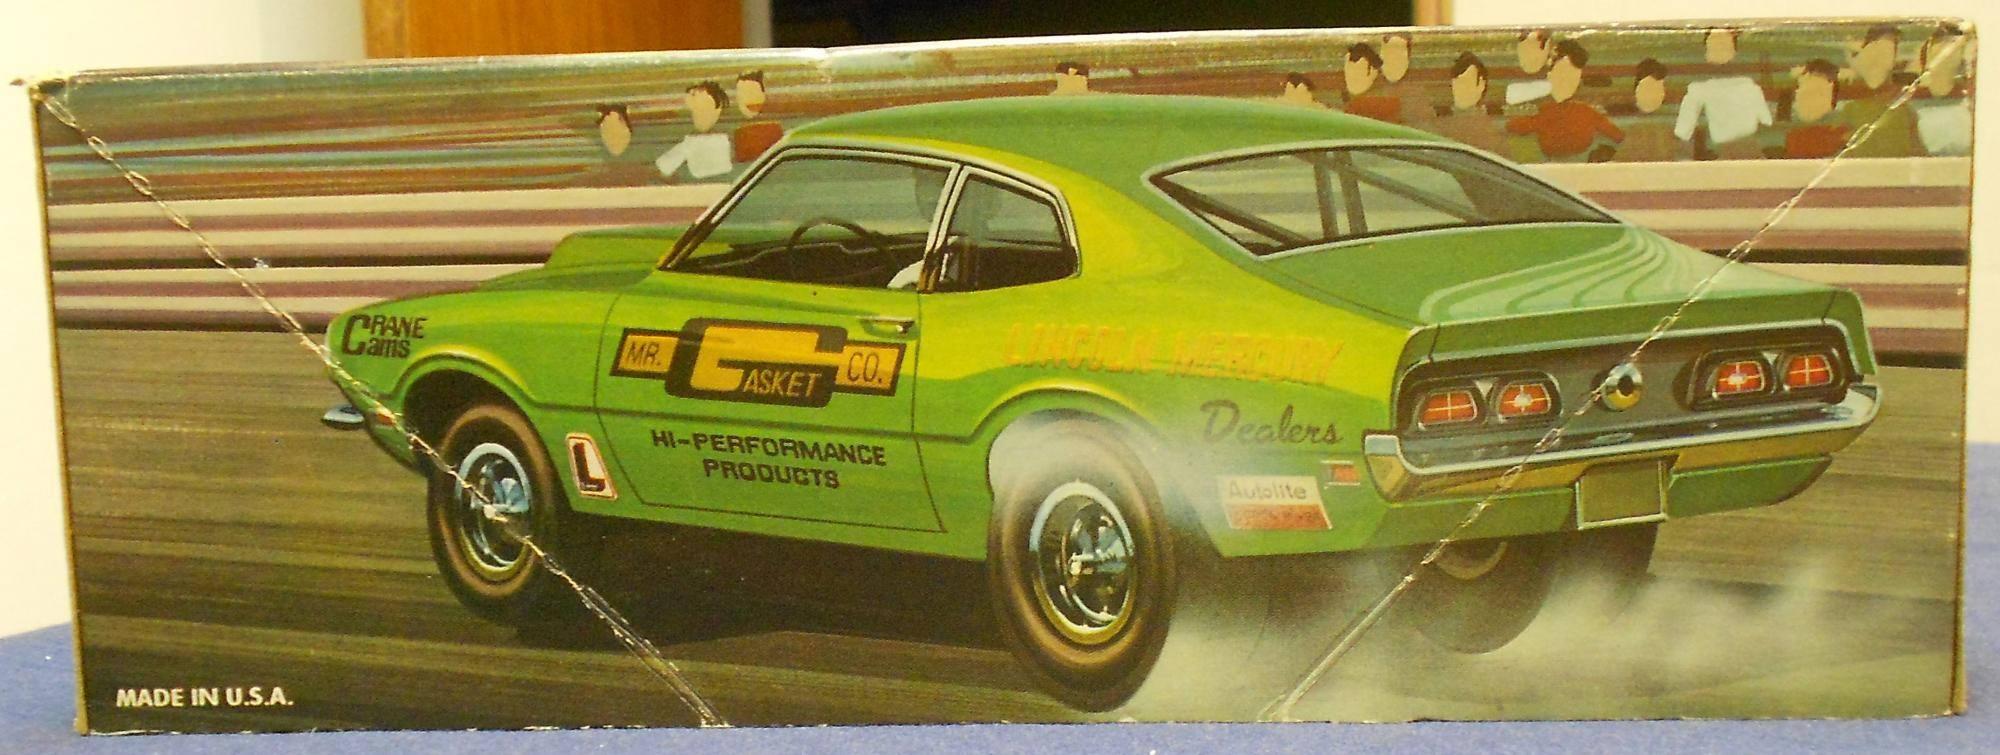 Jo Han Maverick Kits Car Kit News Reviews Model Cars Magazine 1972 Ford Wiring Harness And I Think It Has Some Of The Best Box Art This Issue Unlike Could Be Built Stock Or Pro Comet Had A Separate For Drag